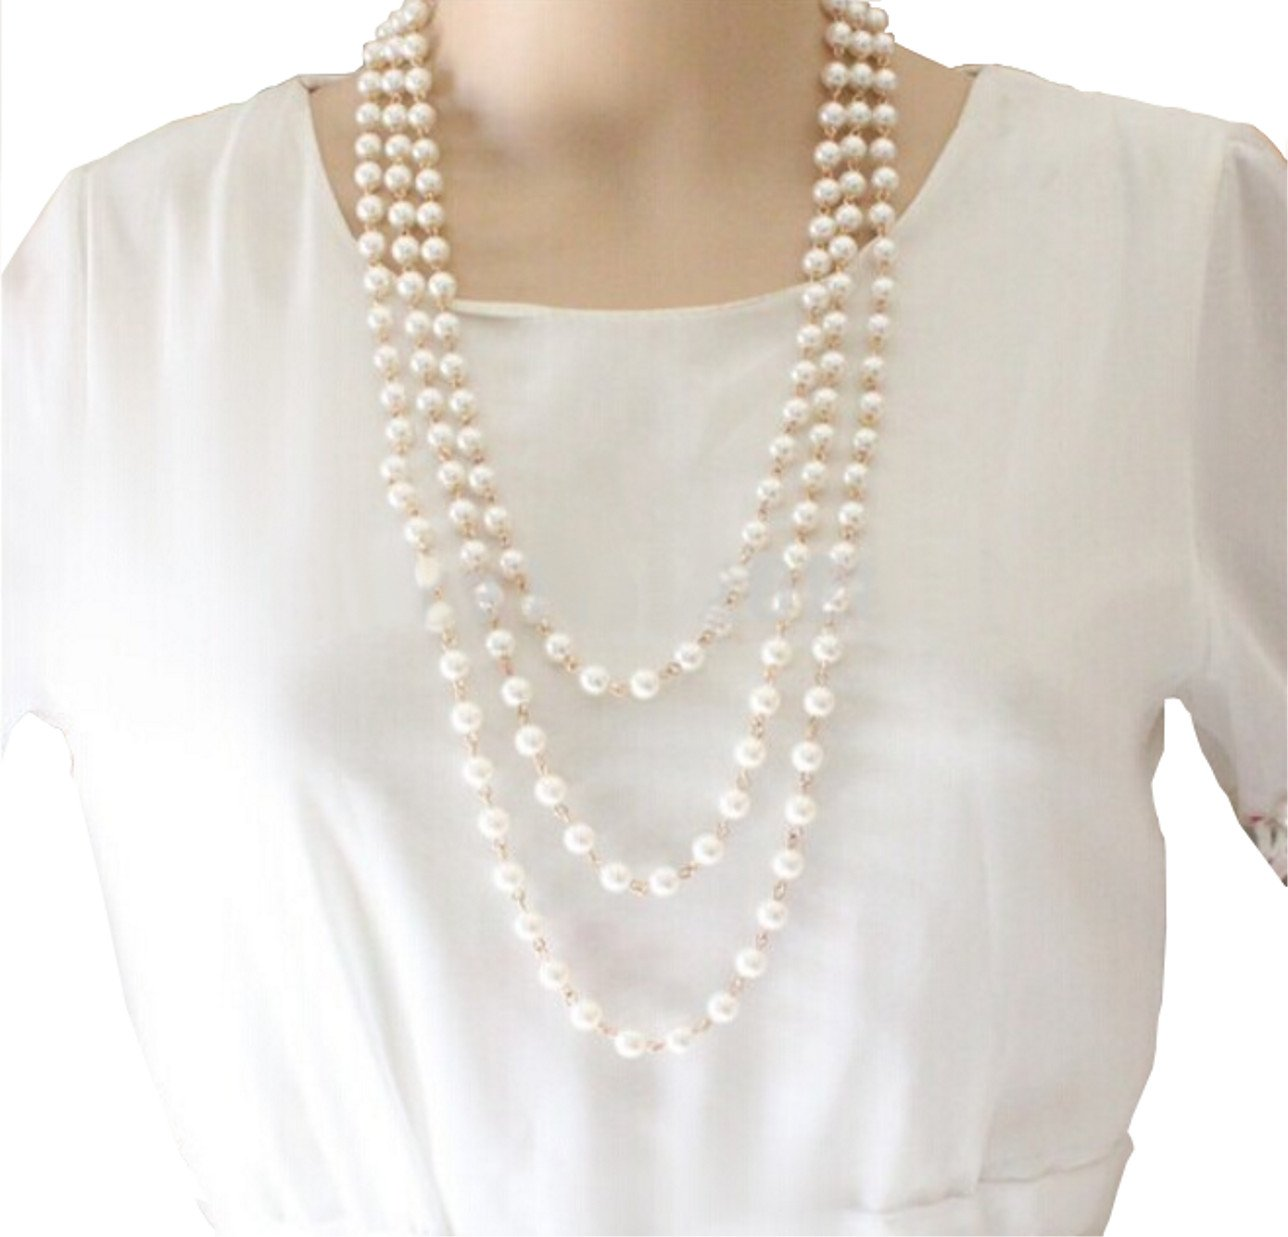 STAYJOY Multi-layer 3-Strand Metal Linked White Pearl Fashion Choker Necklace with Extender